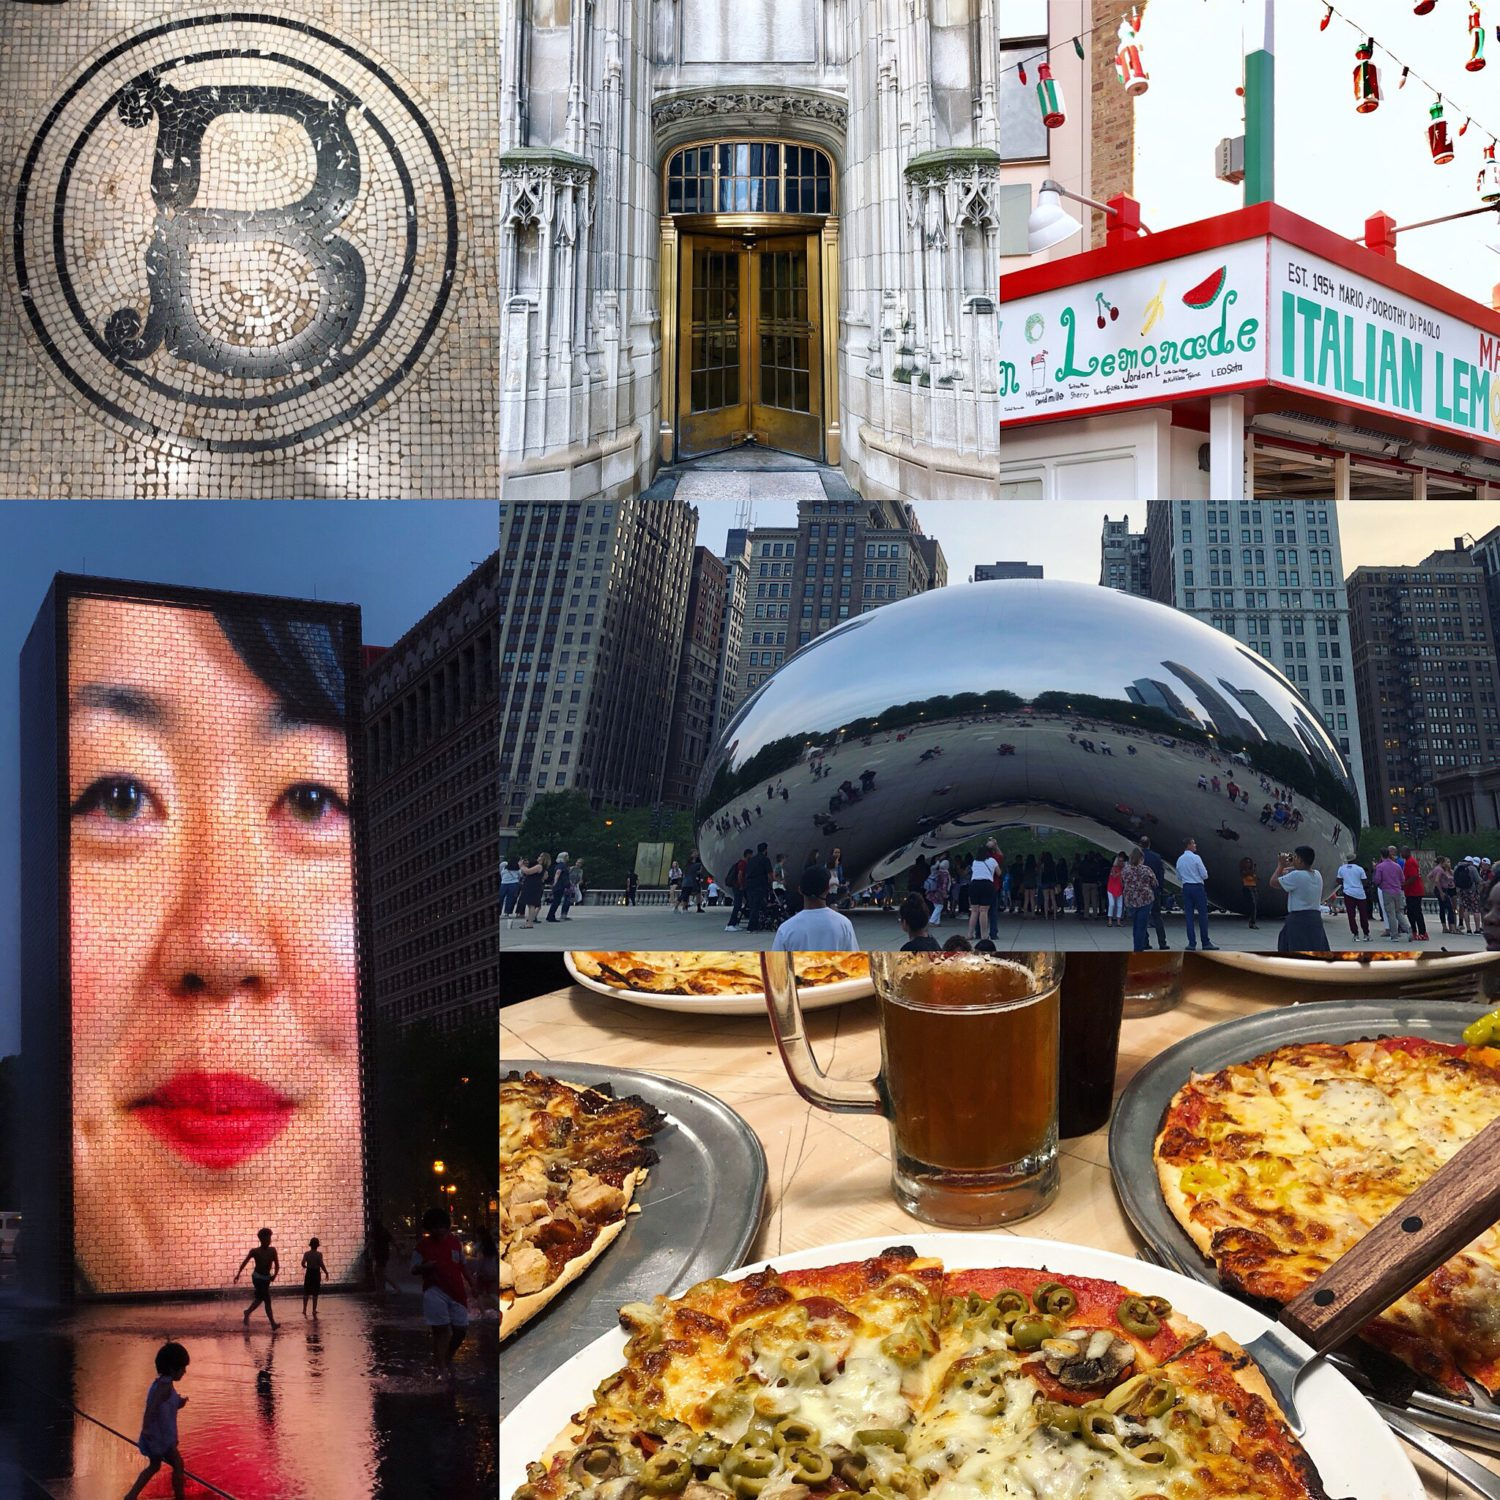 Chicago Collage, Bean, Italian Lemonade, Architecture, Pizza, Fountain